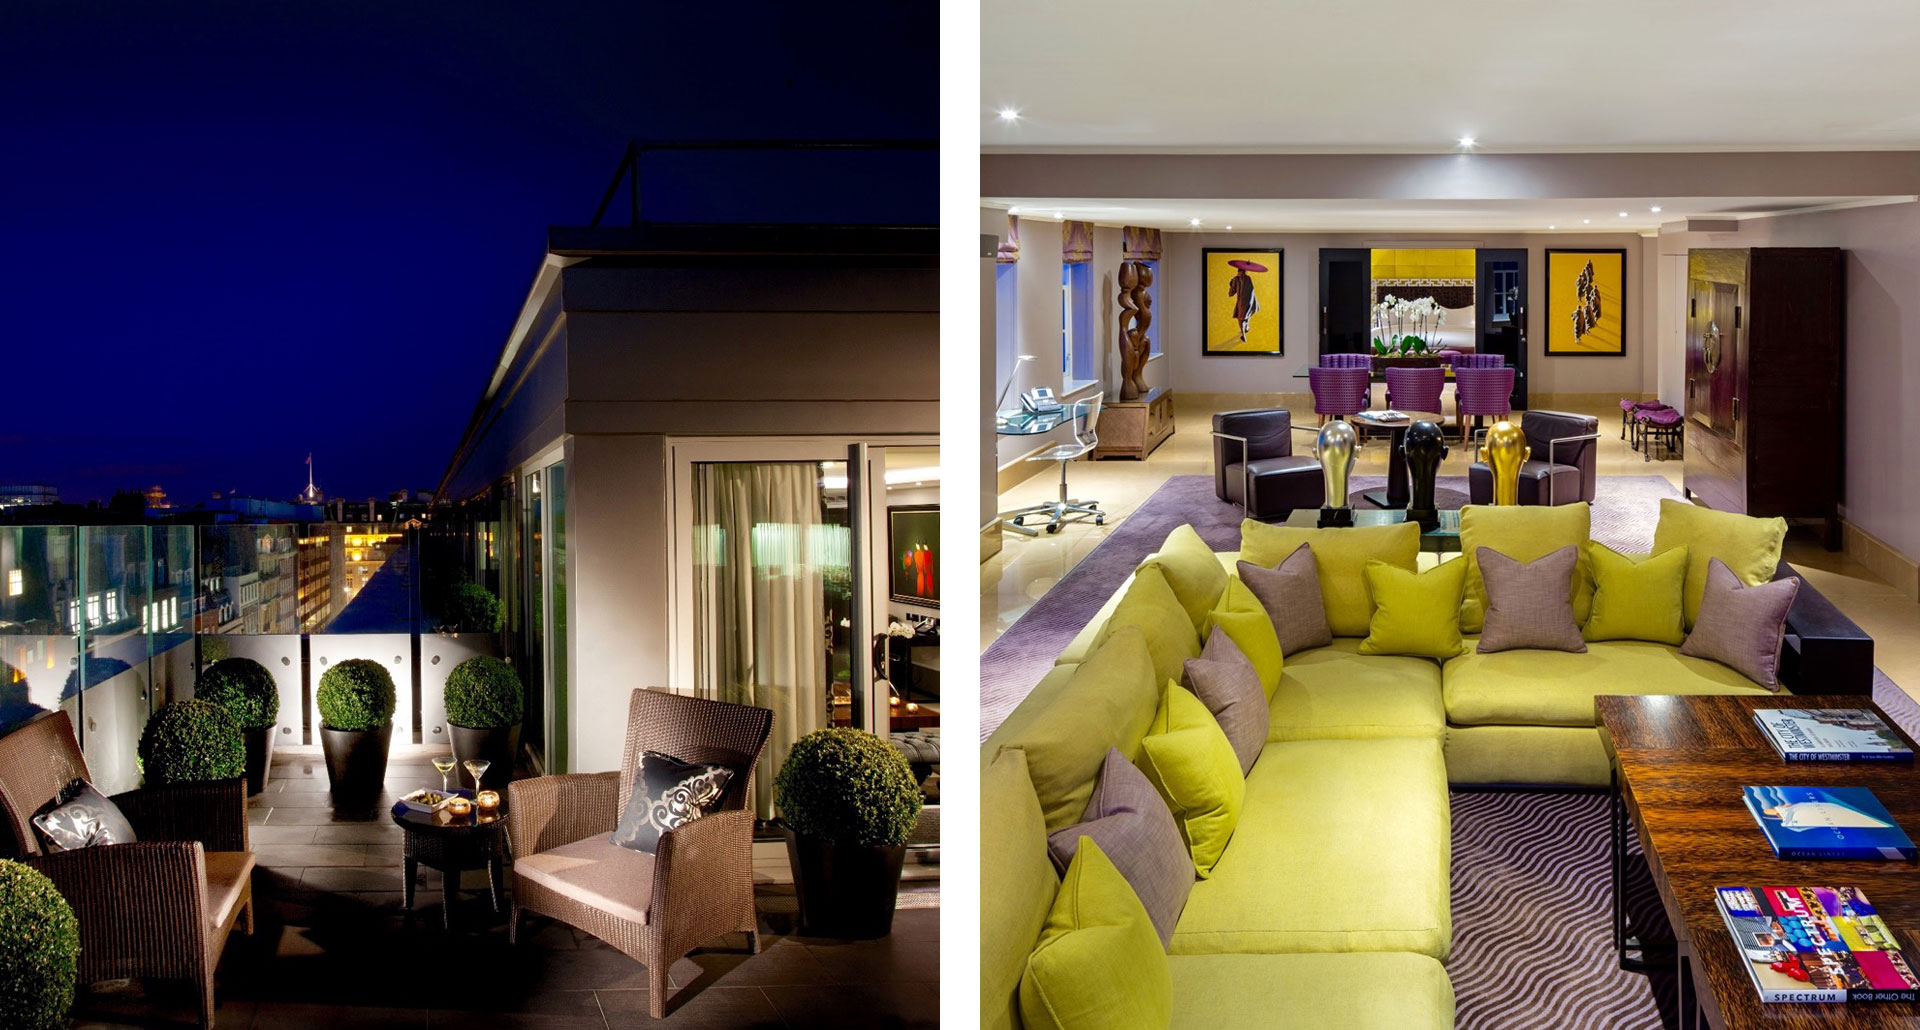 The May Fair - boutique hotel in London